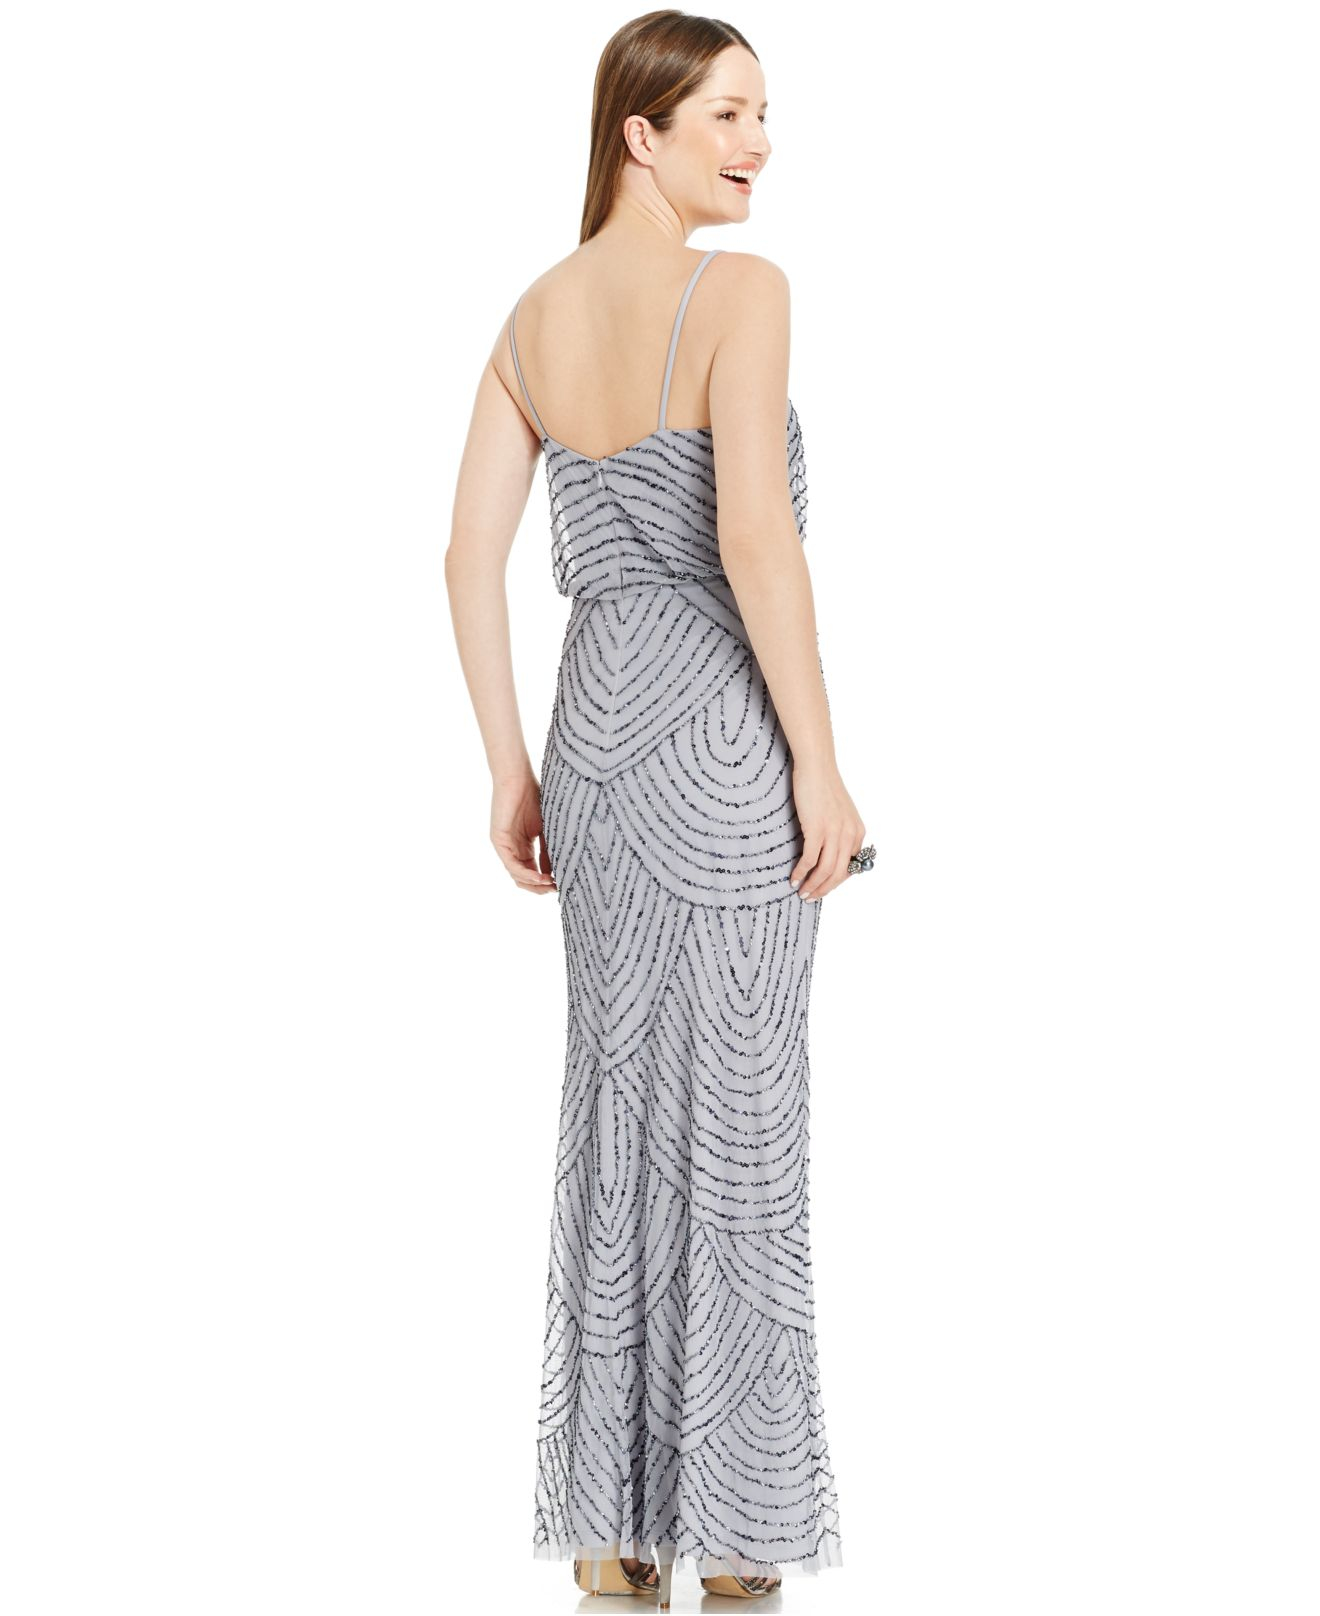 Adrianna papell petite gown / Recent Sale